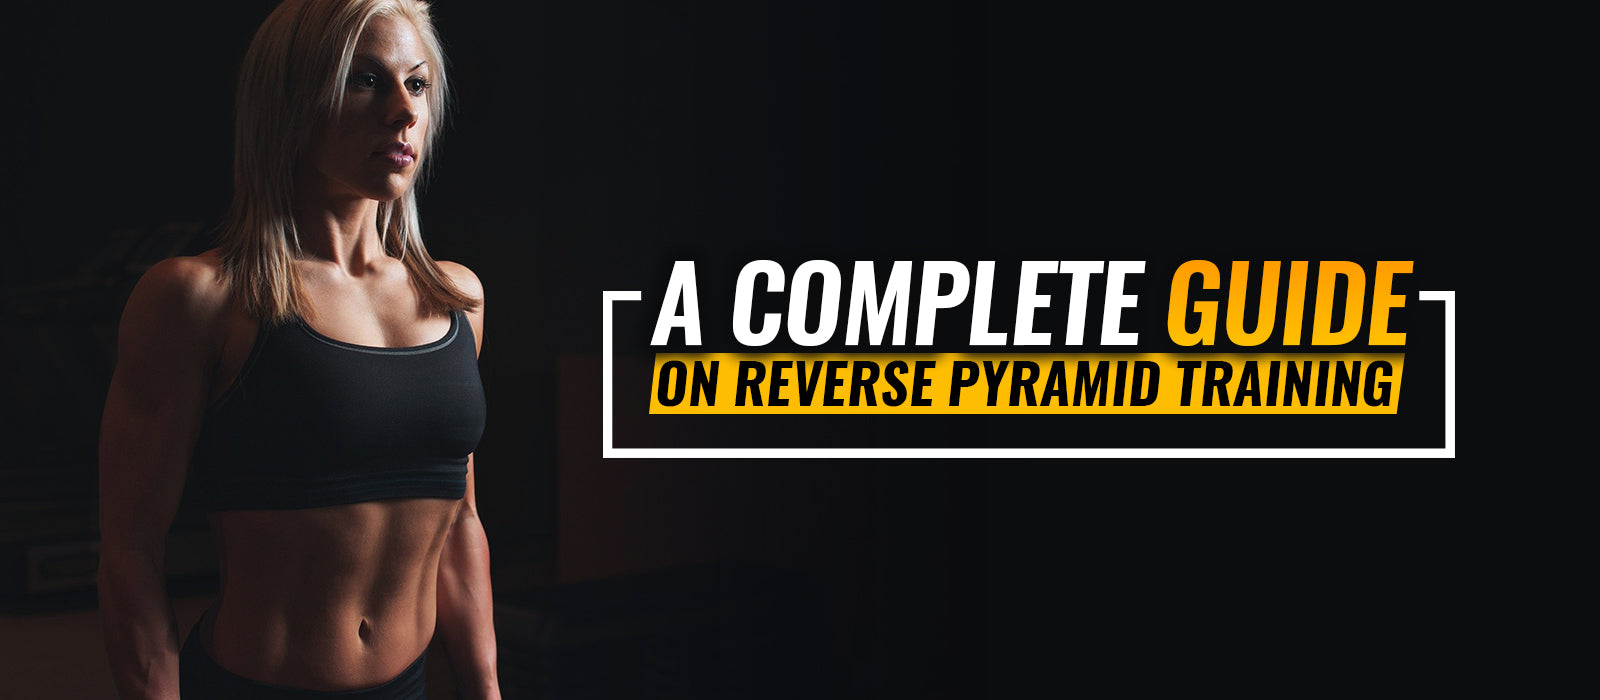 A Complete Guide On Reverse Pyramid Training